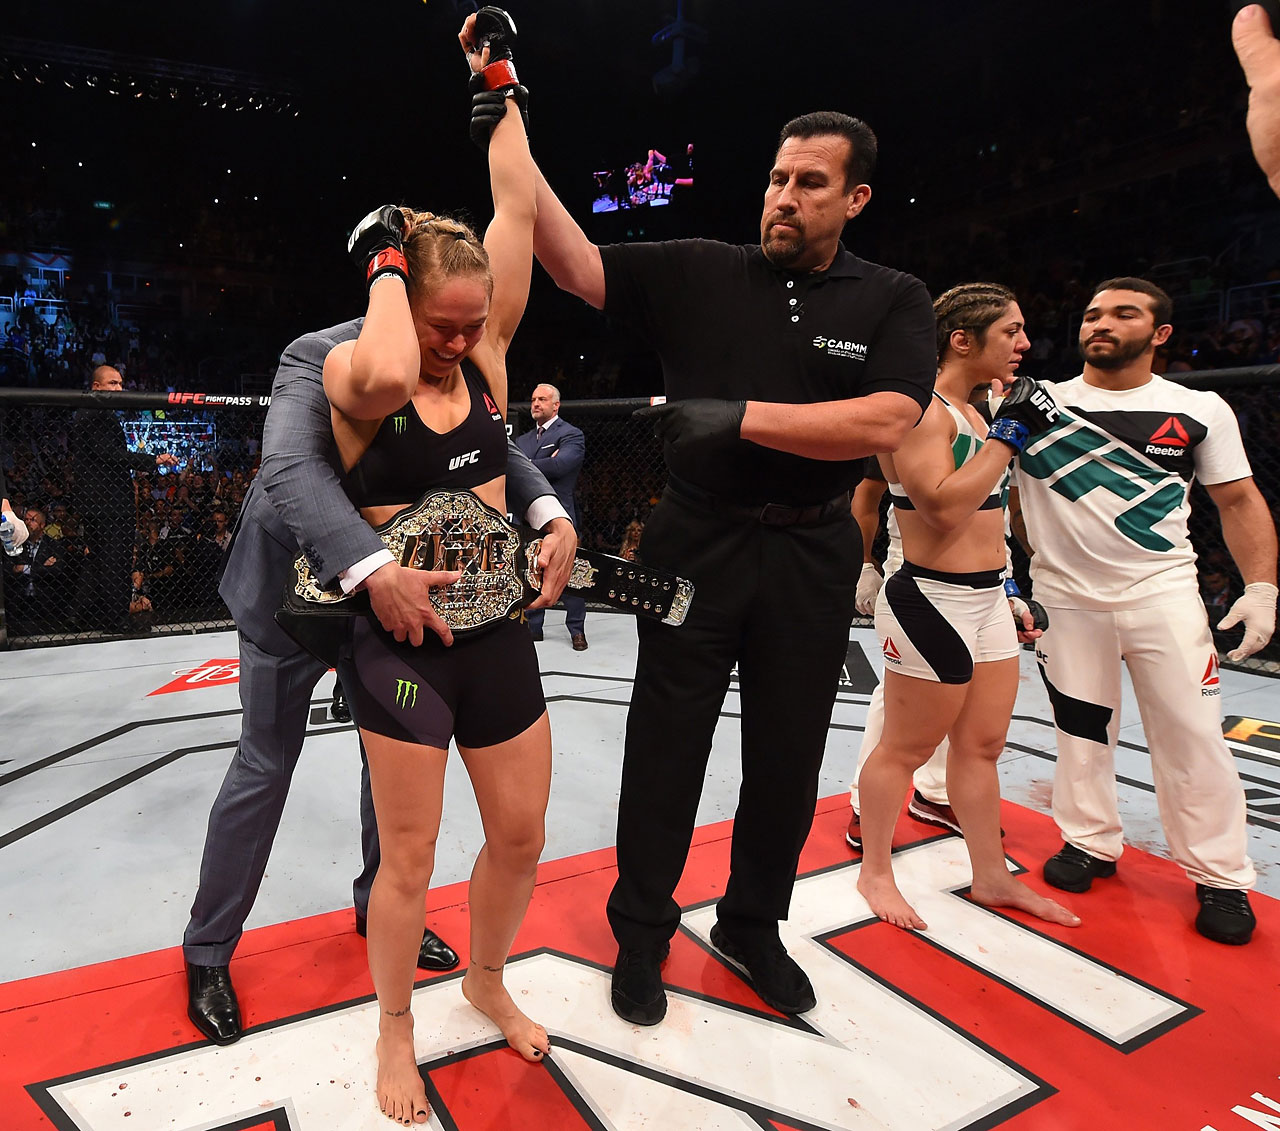 Ronda Rousey after her 34-second victory over Bethe Correia.